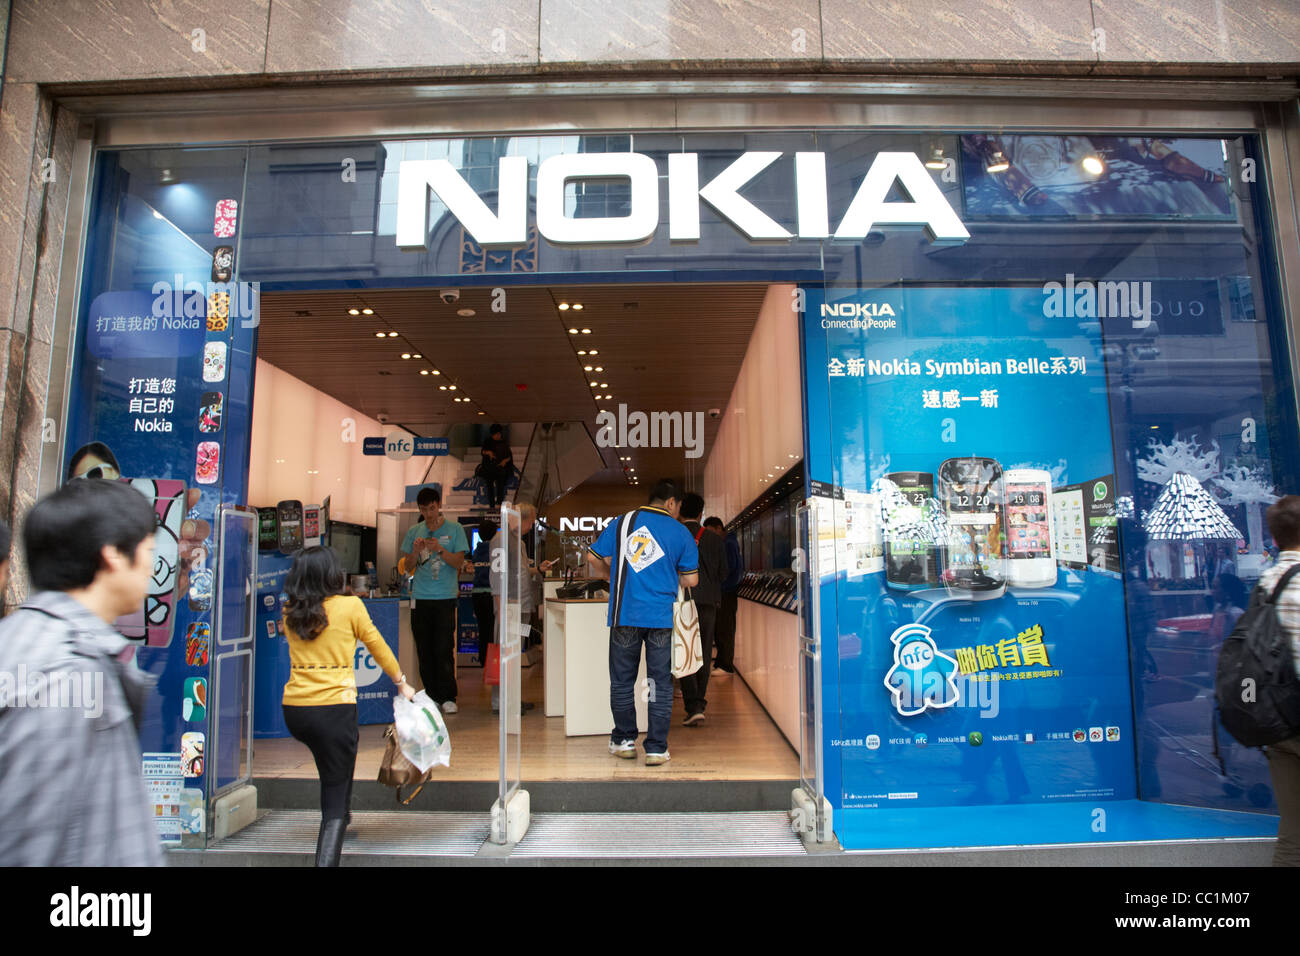 nokia mobile phone store in hong kong hksar china asia - Stock Image